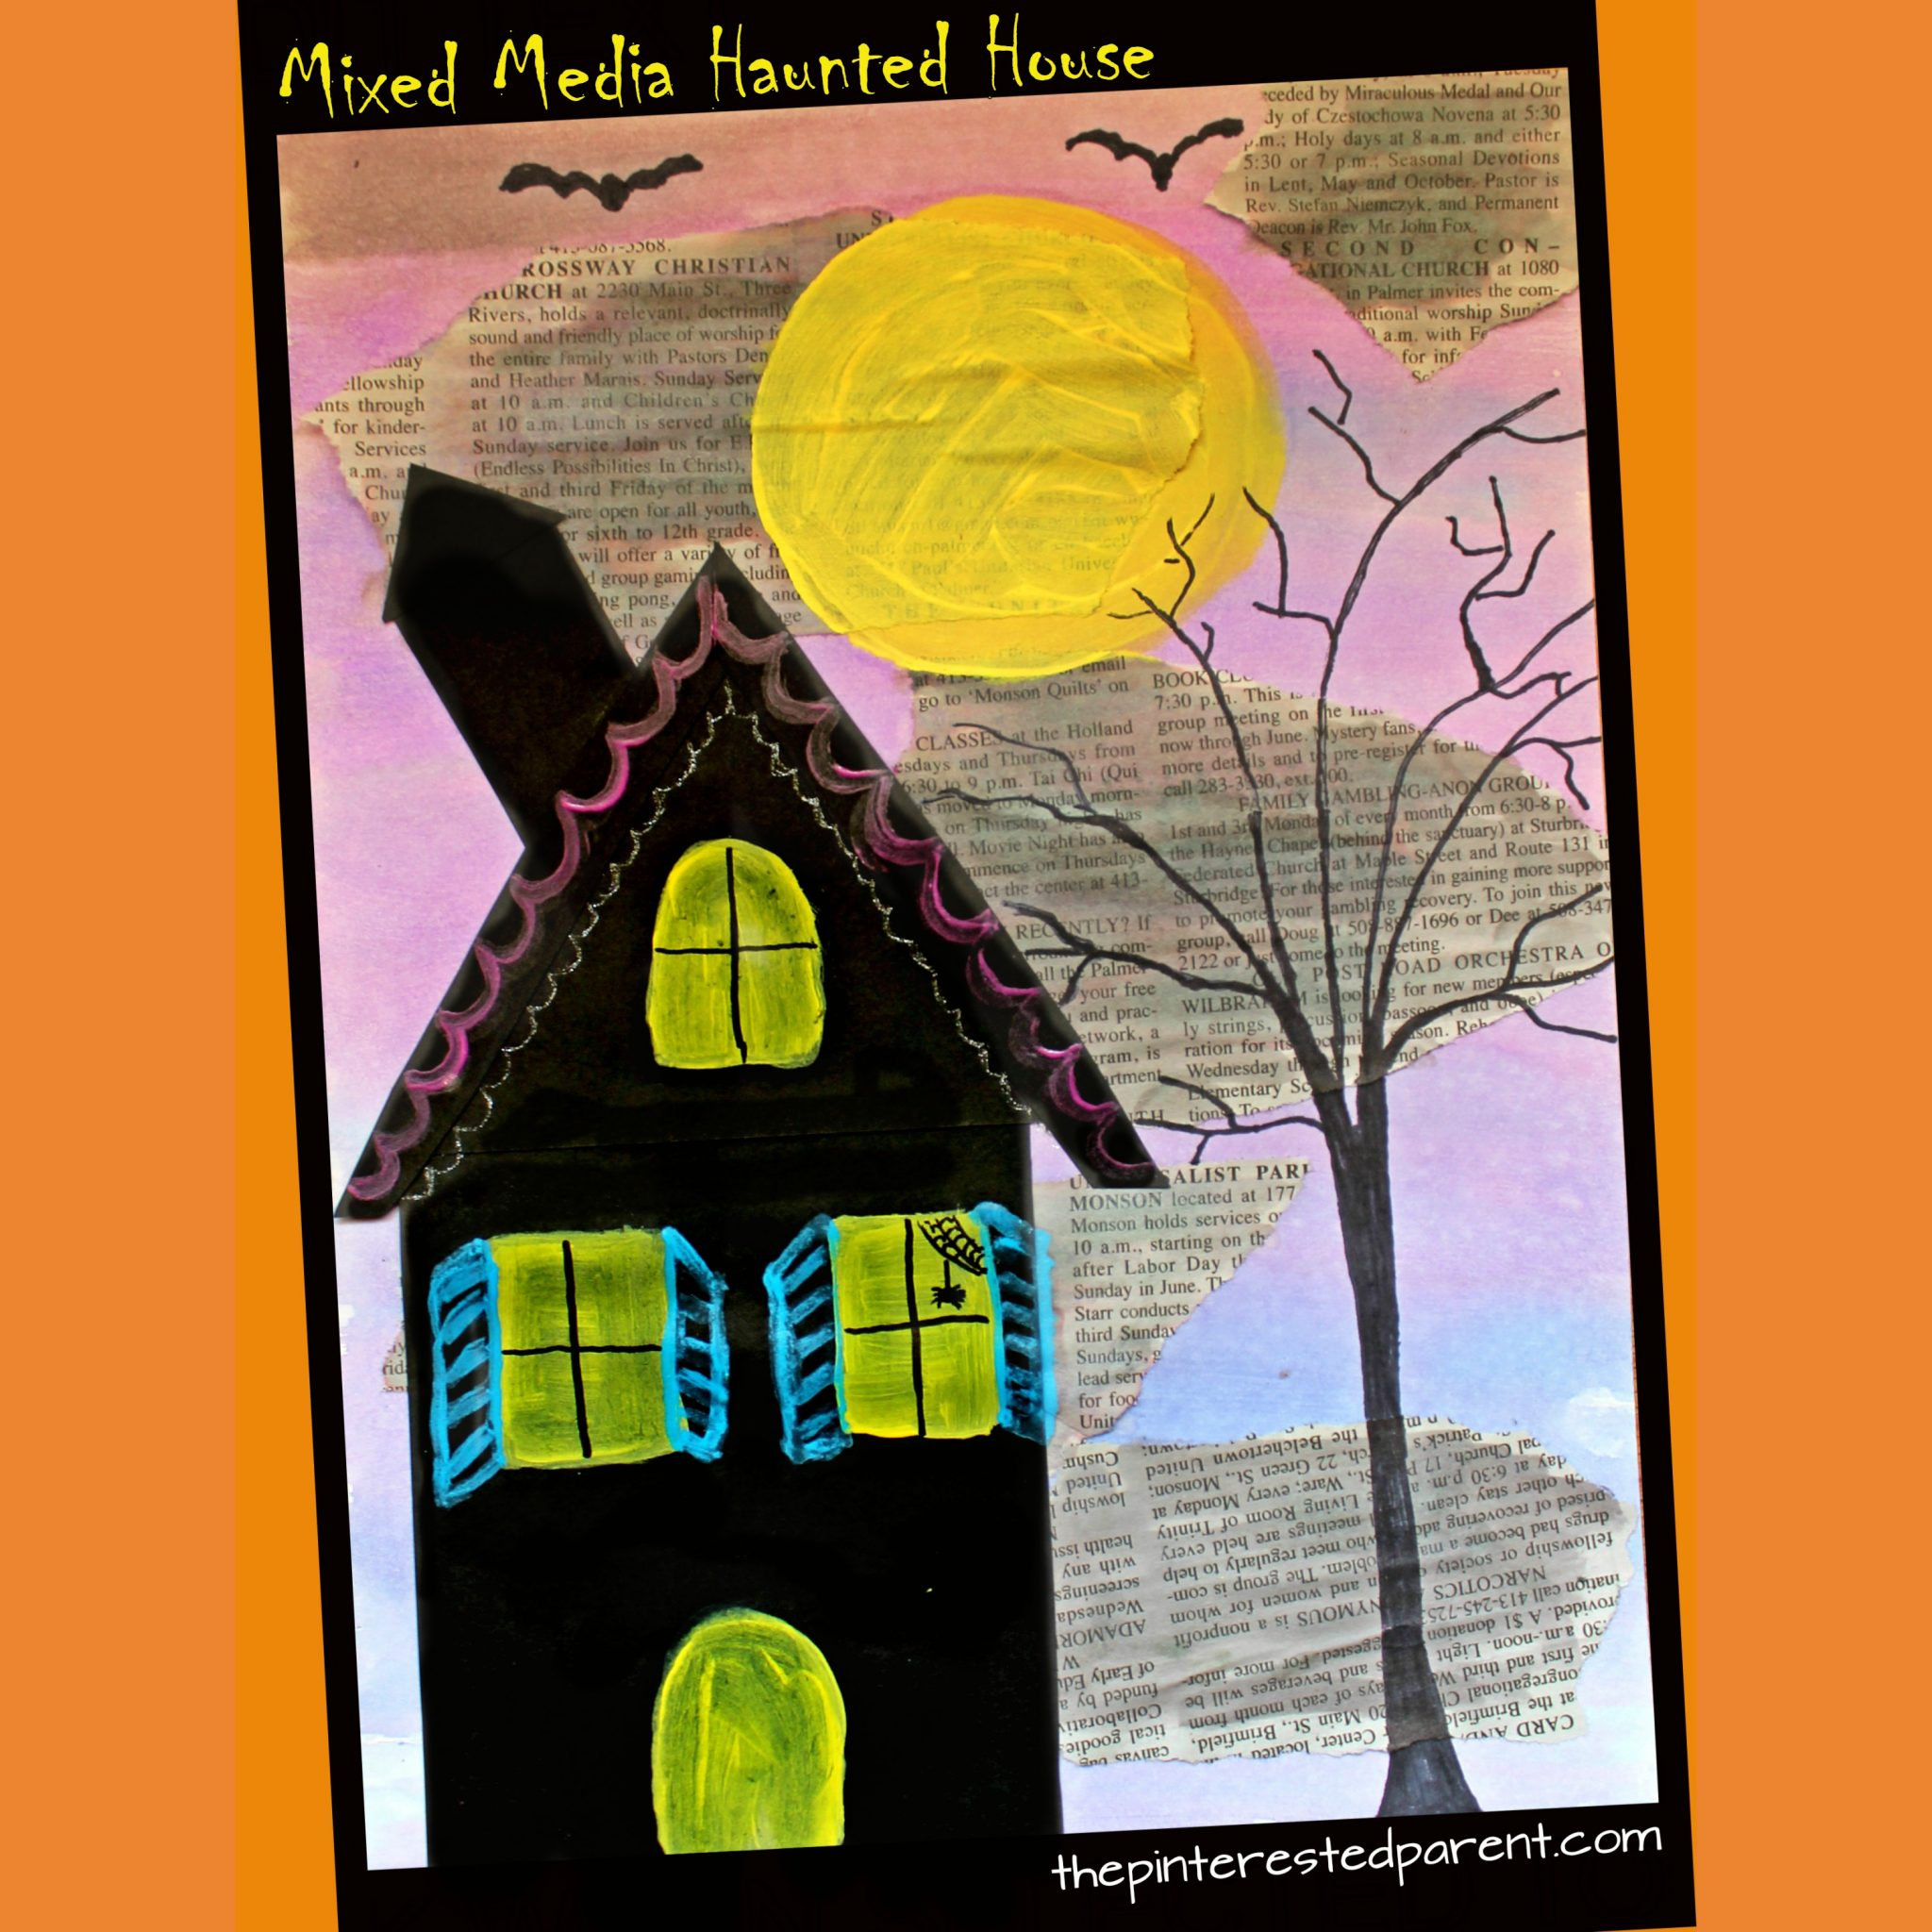 Pibterest Cast Ideas For Kids: Mixed Media Haunted Houses